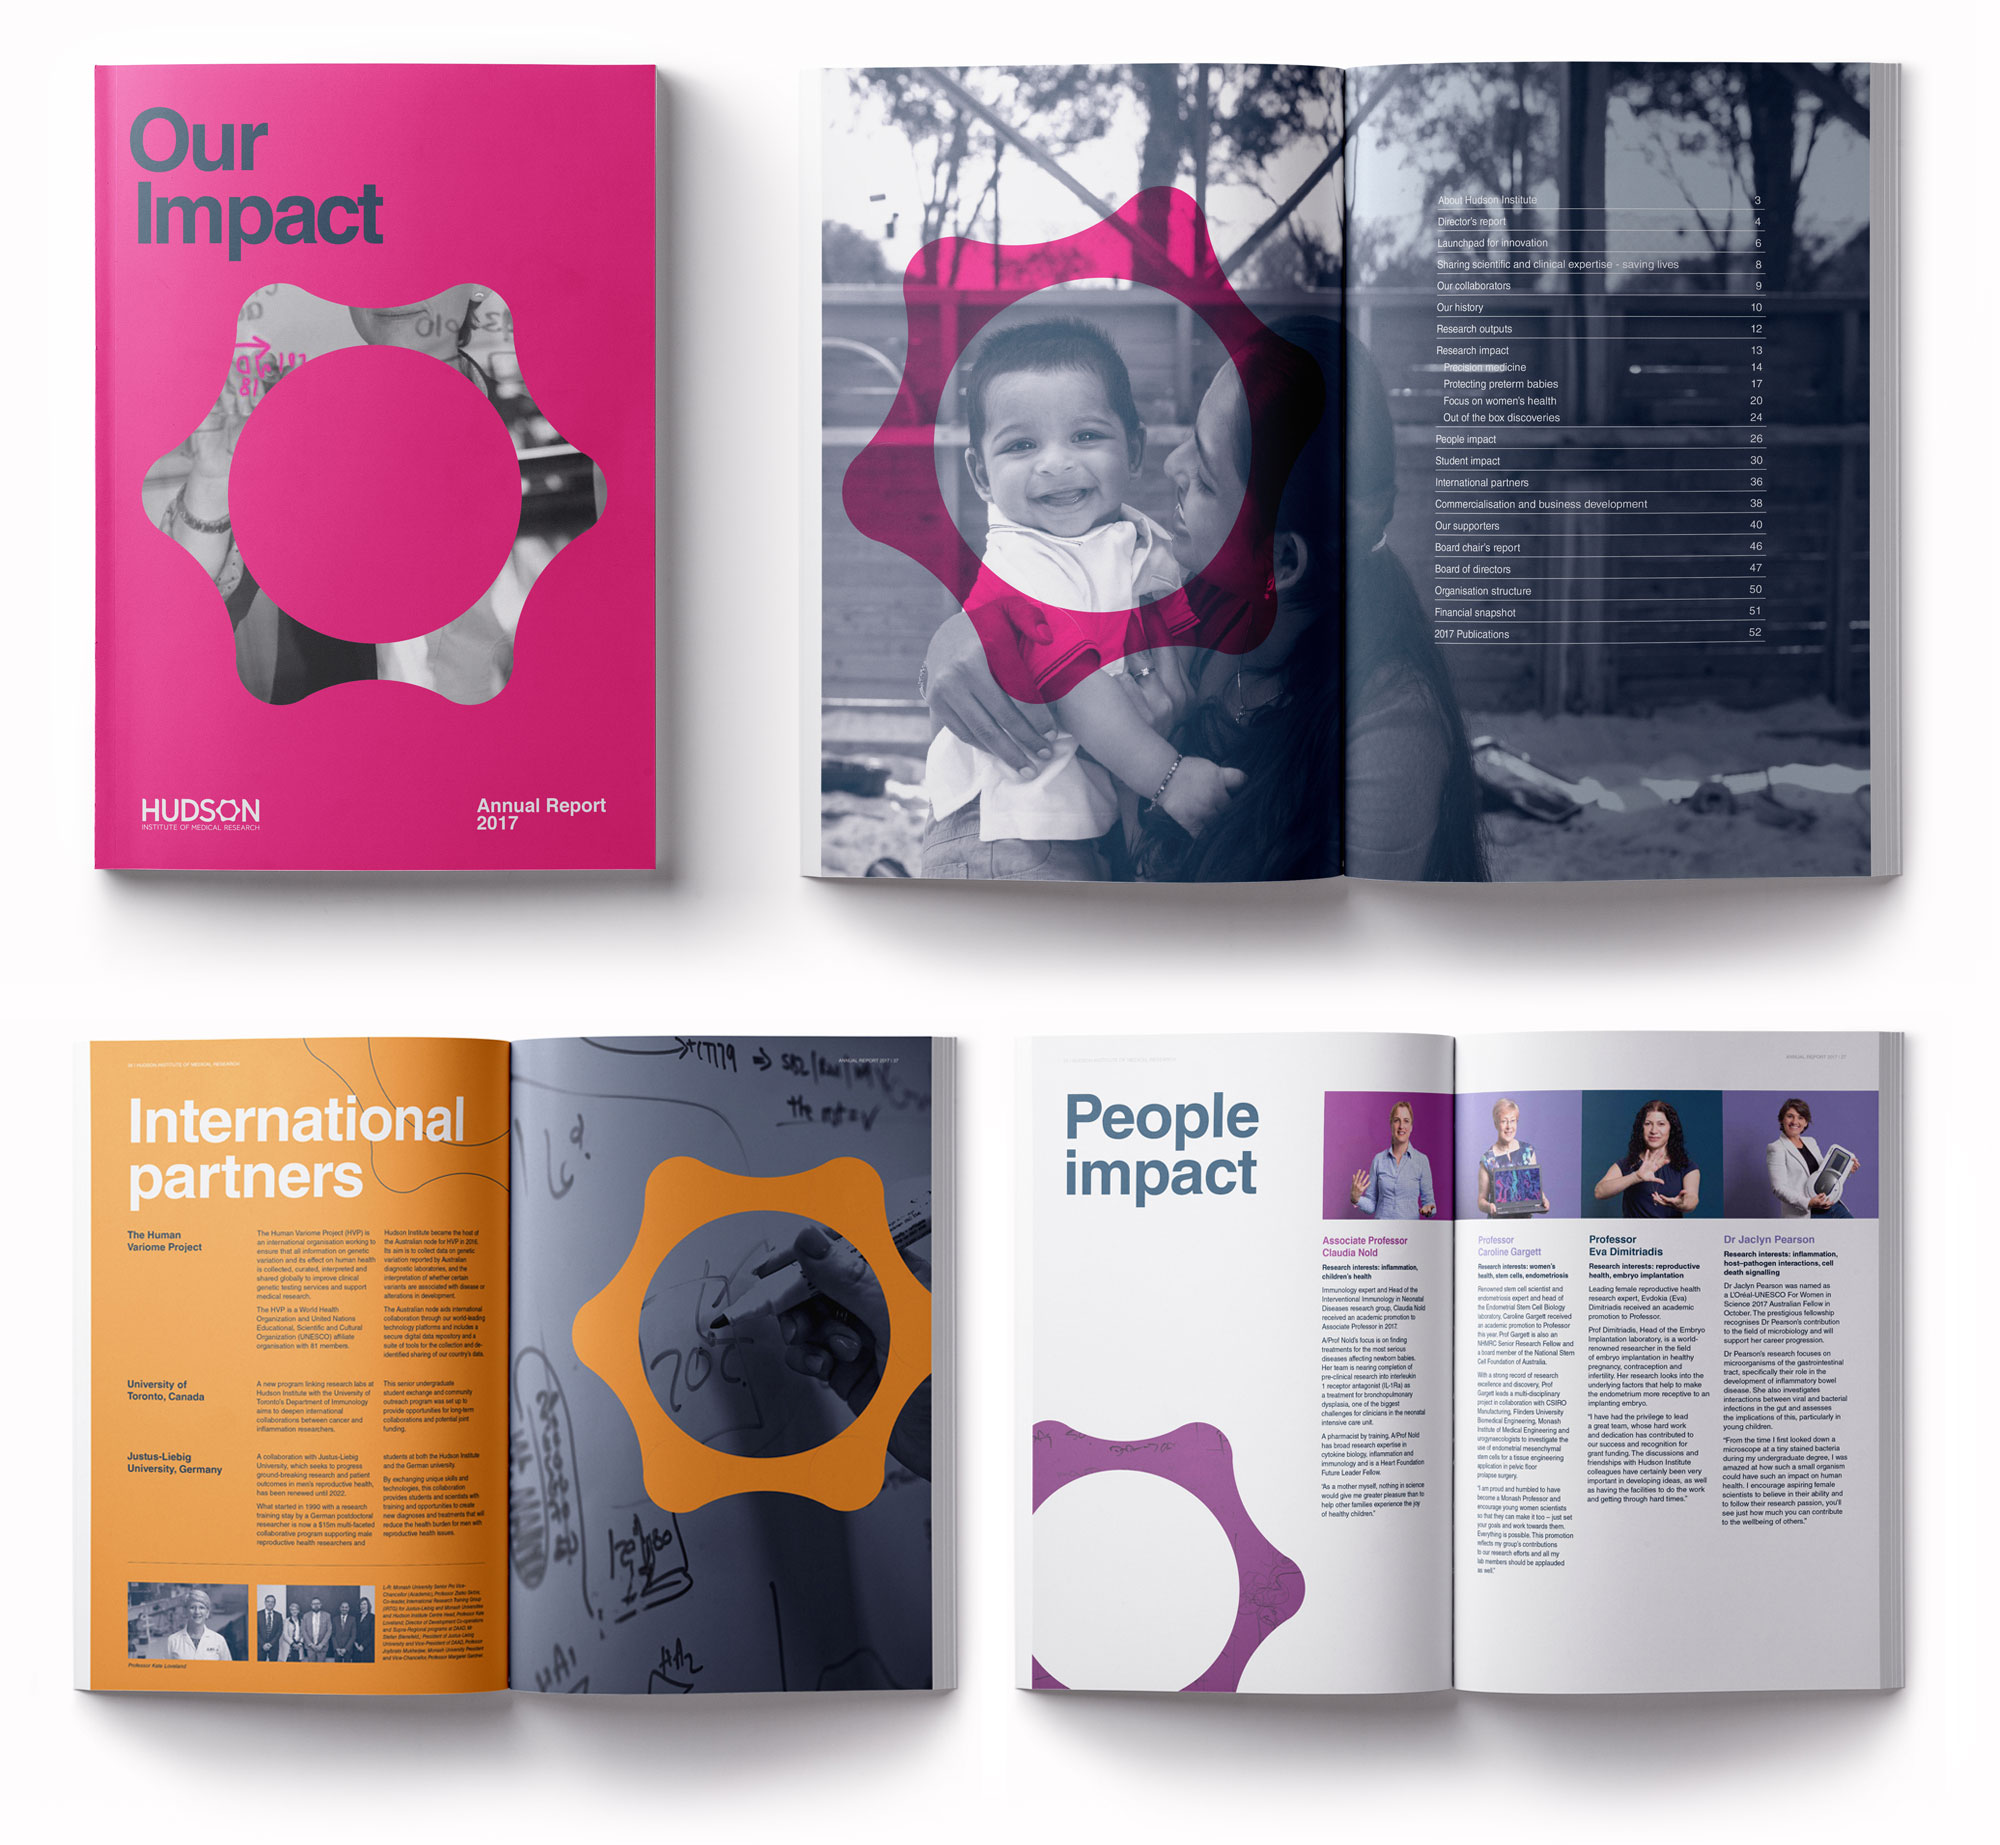 Hudson's 2017 annual report with updated brand